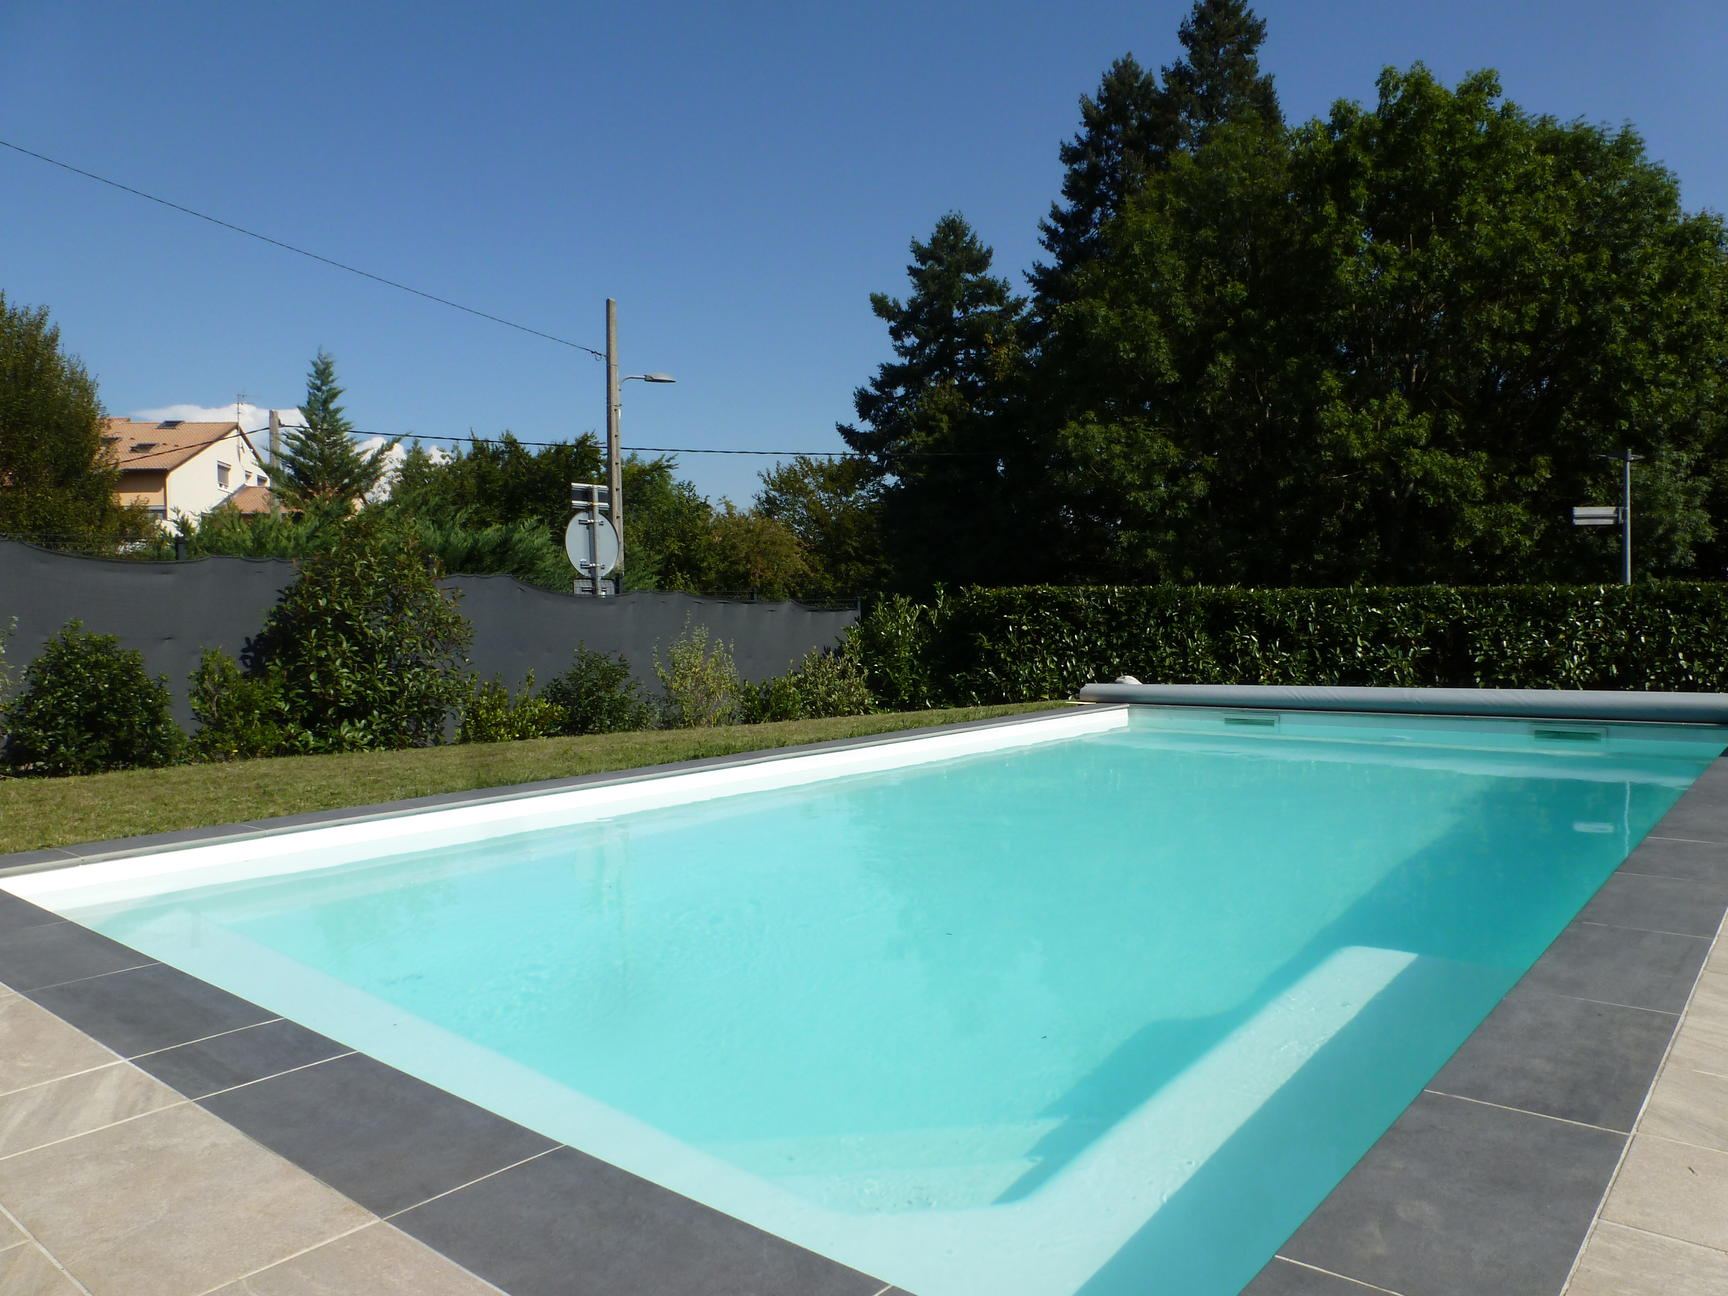 MAISON DARDILLY  VILLAGE DE PLAIN PIED PISCINE - Dardilly